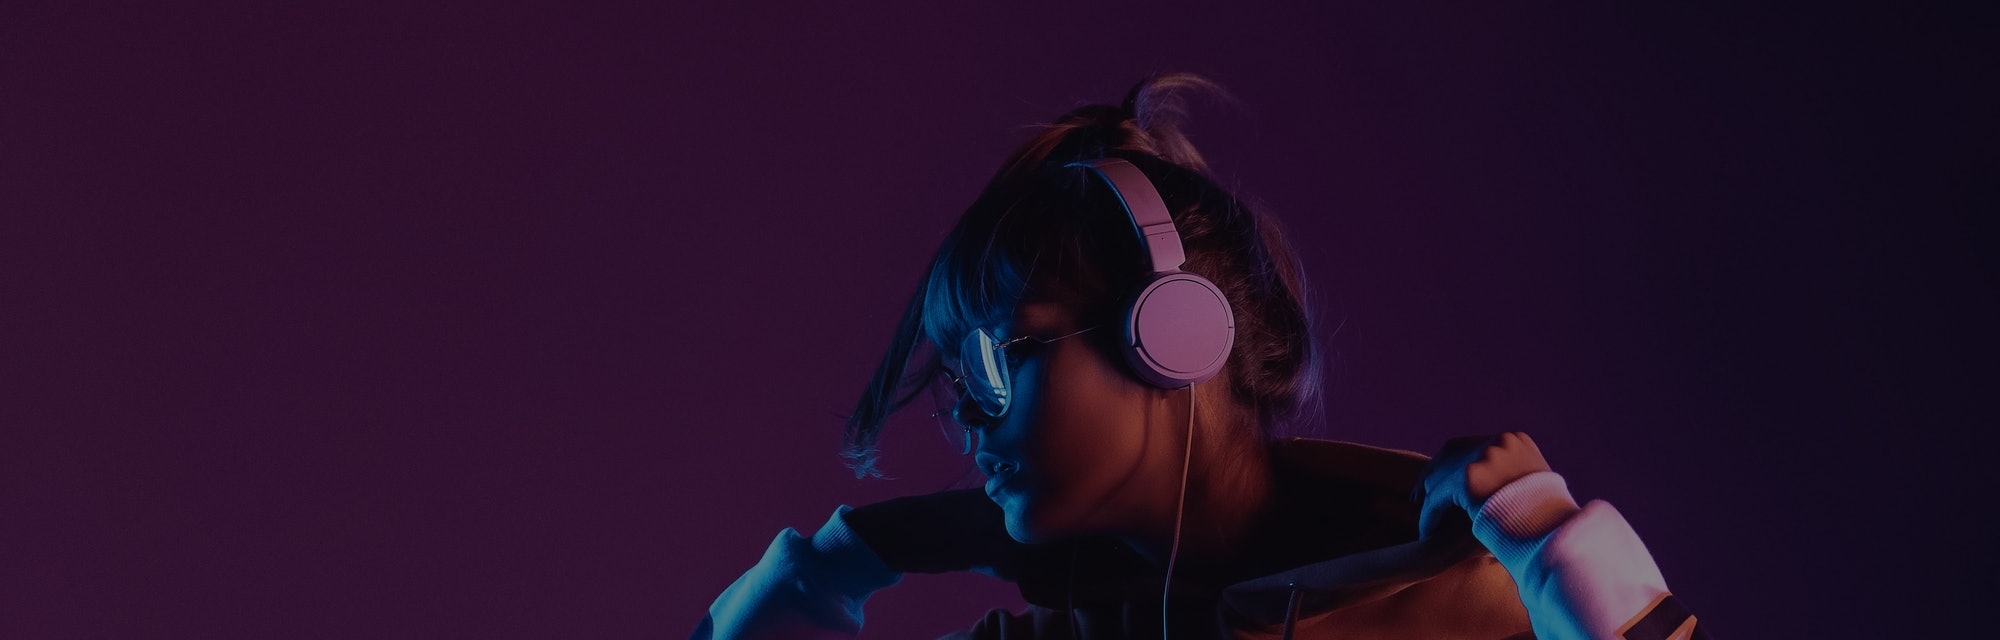 Hipster igen teen pretty fashion girl model wear stylish glasses headphones enjoy listen new cool music mix stand at purple studio background in trendy 80s 90s club blue party light, profile view